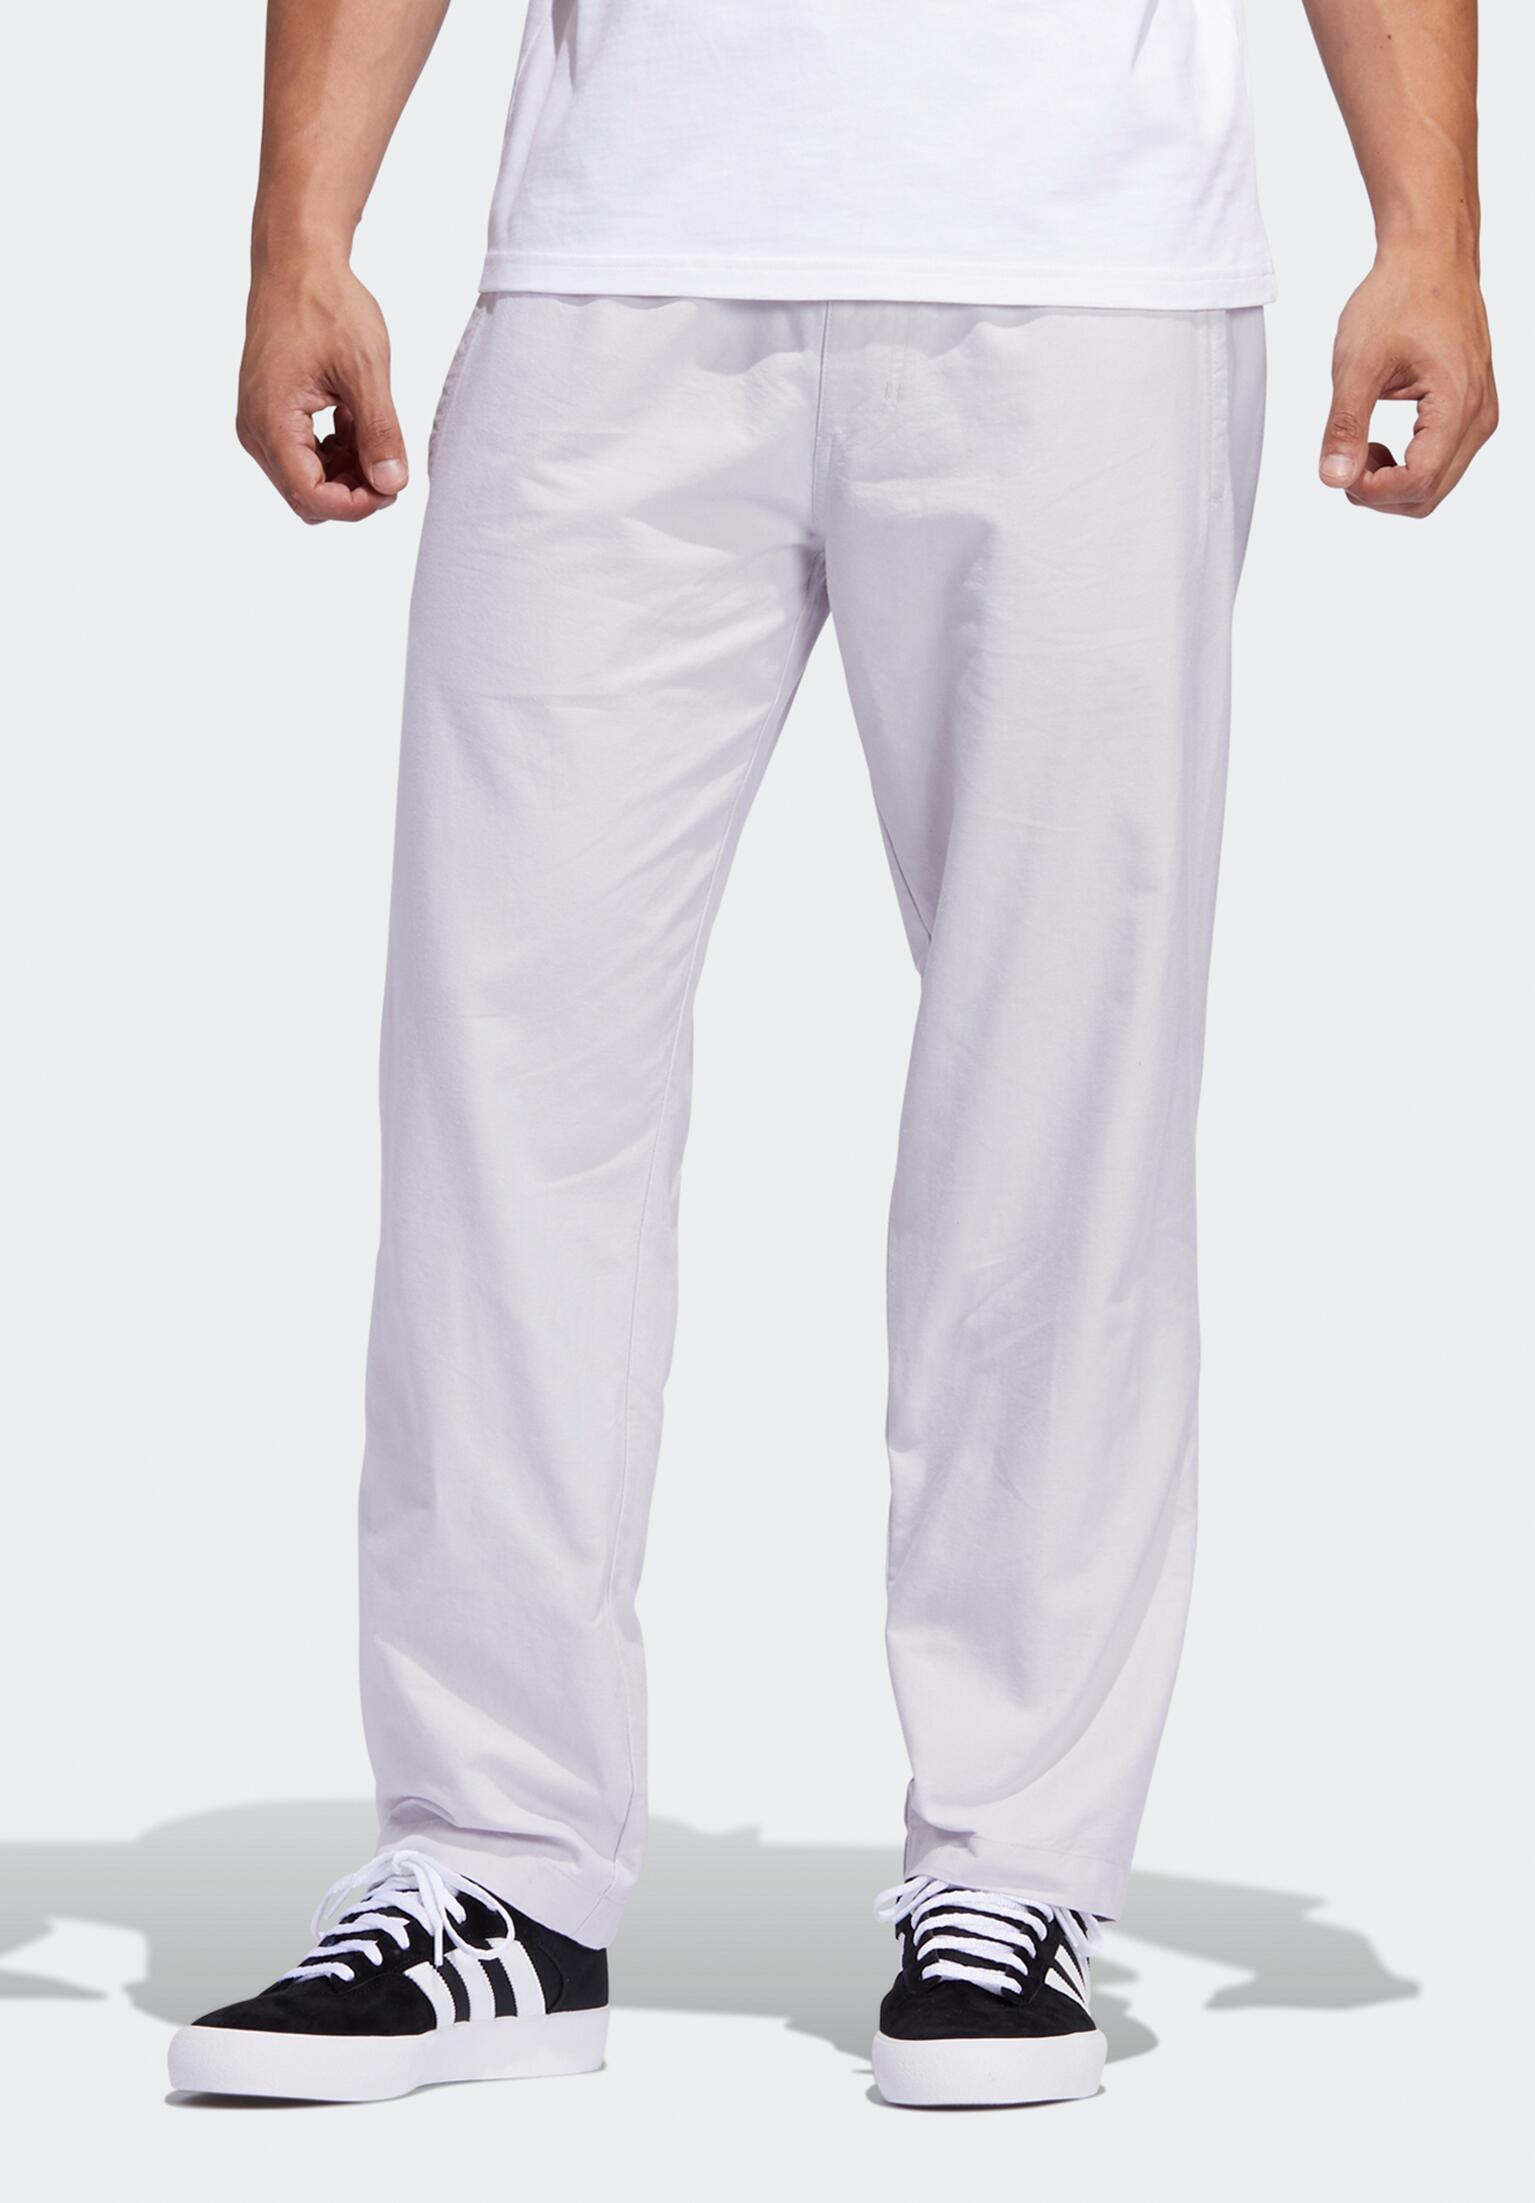 Couch Pant adidas-skateboarding Chinos